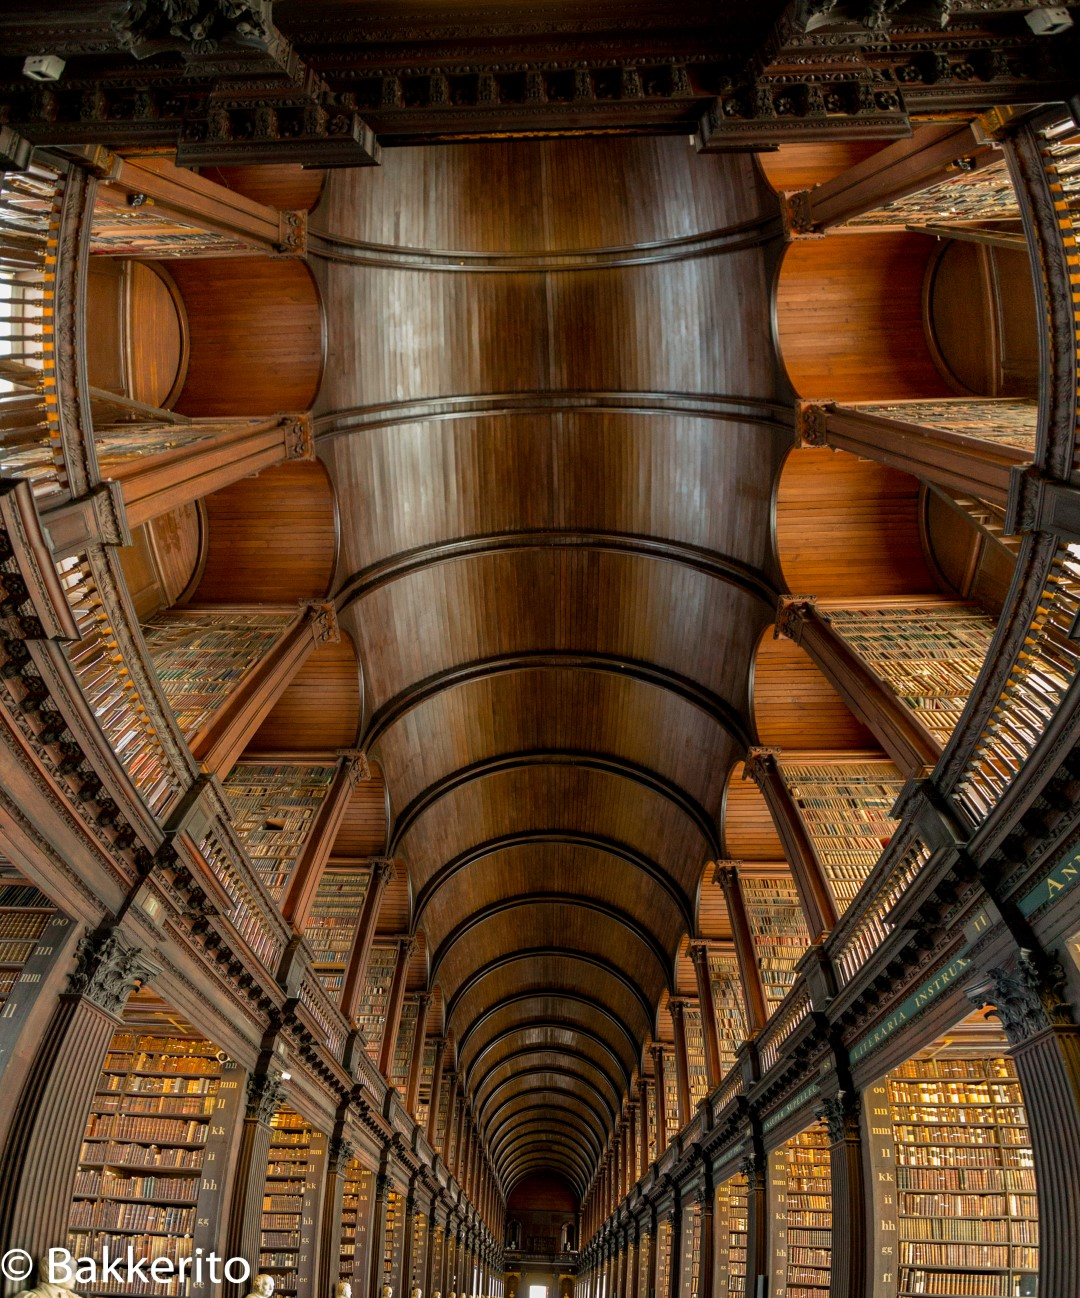 When you are in Dublin, visit the library on the University premises